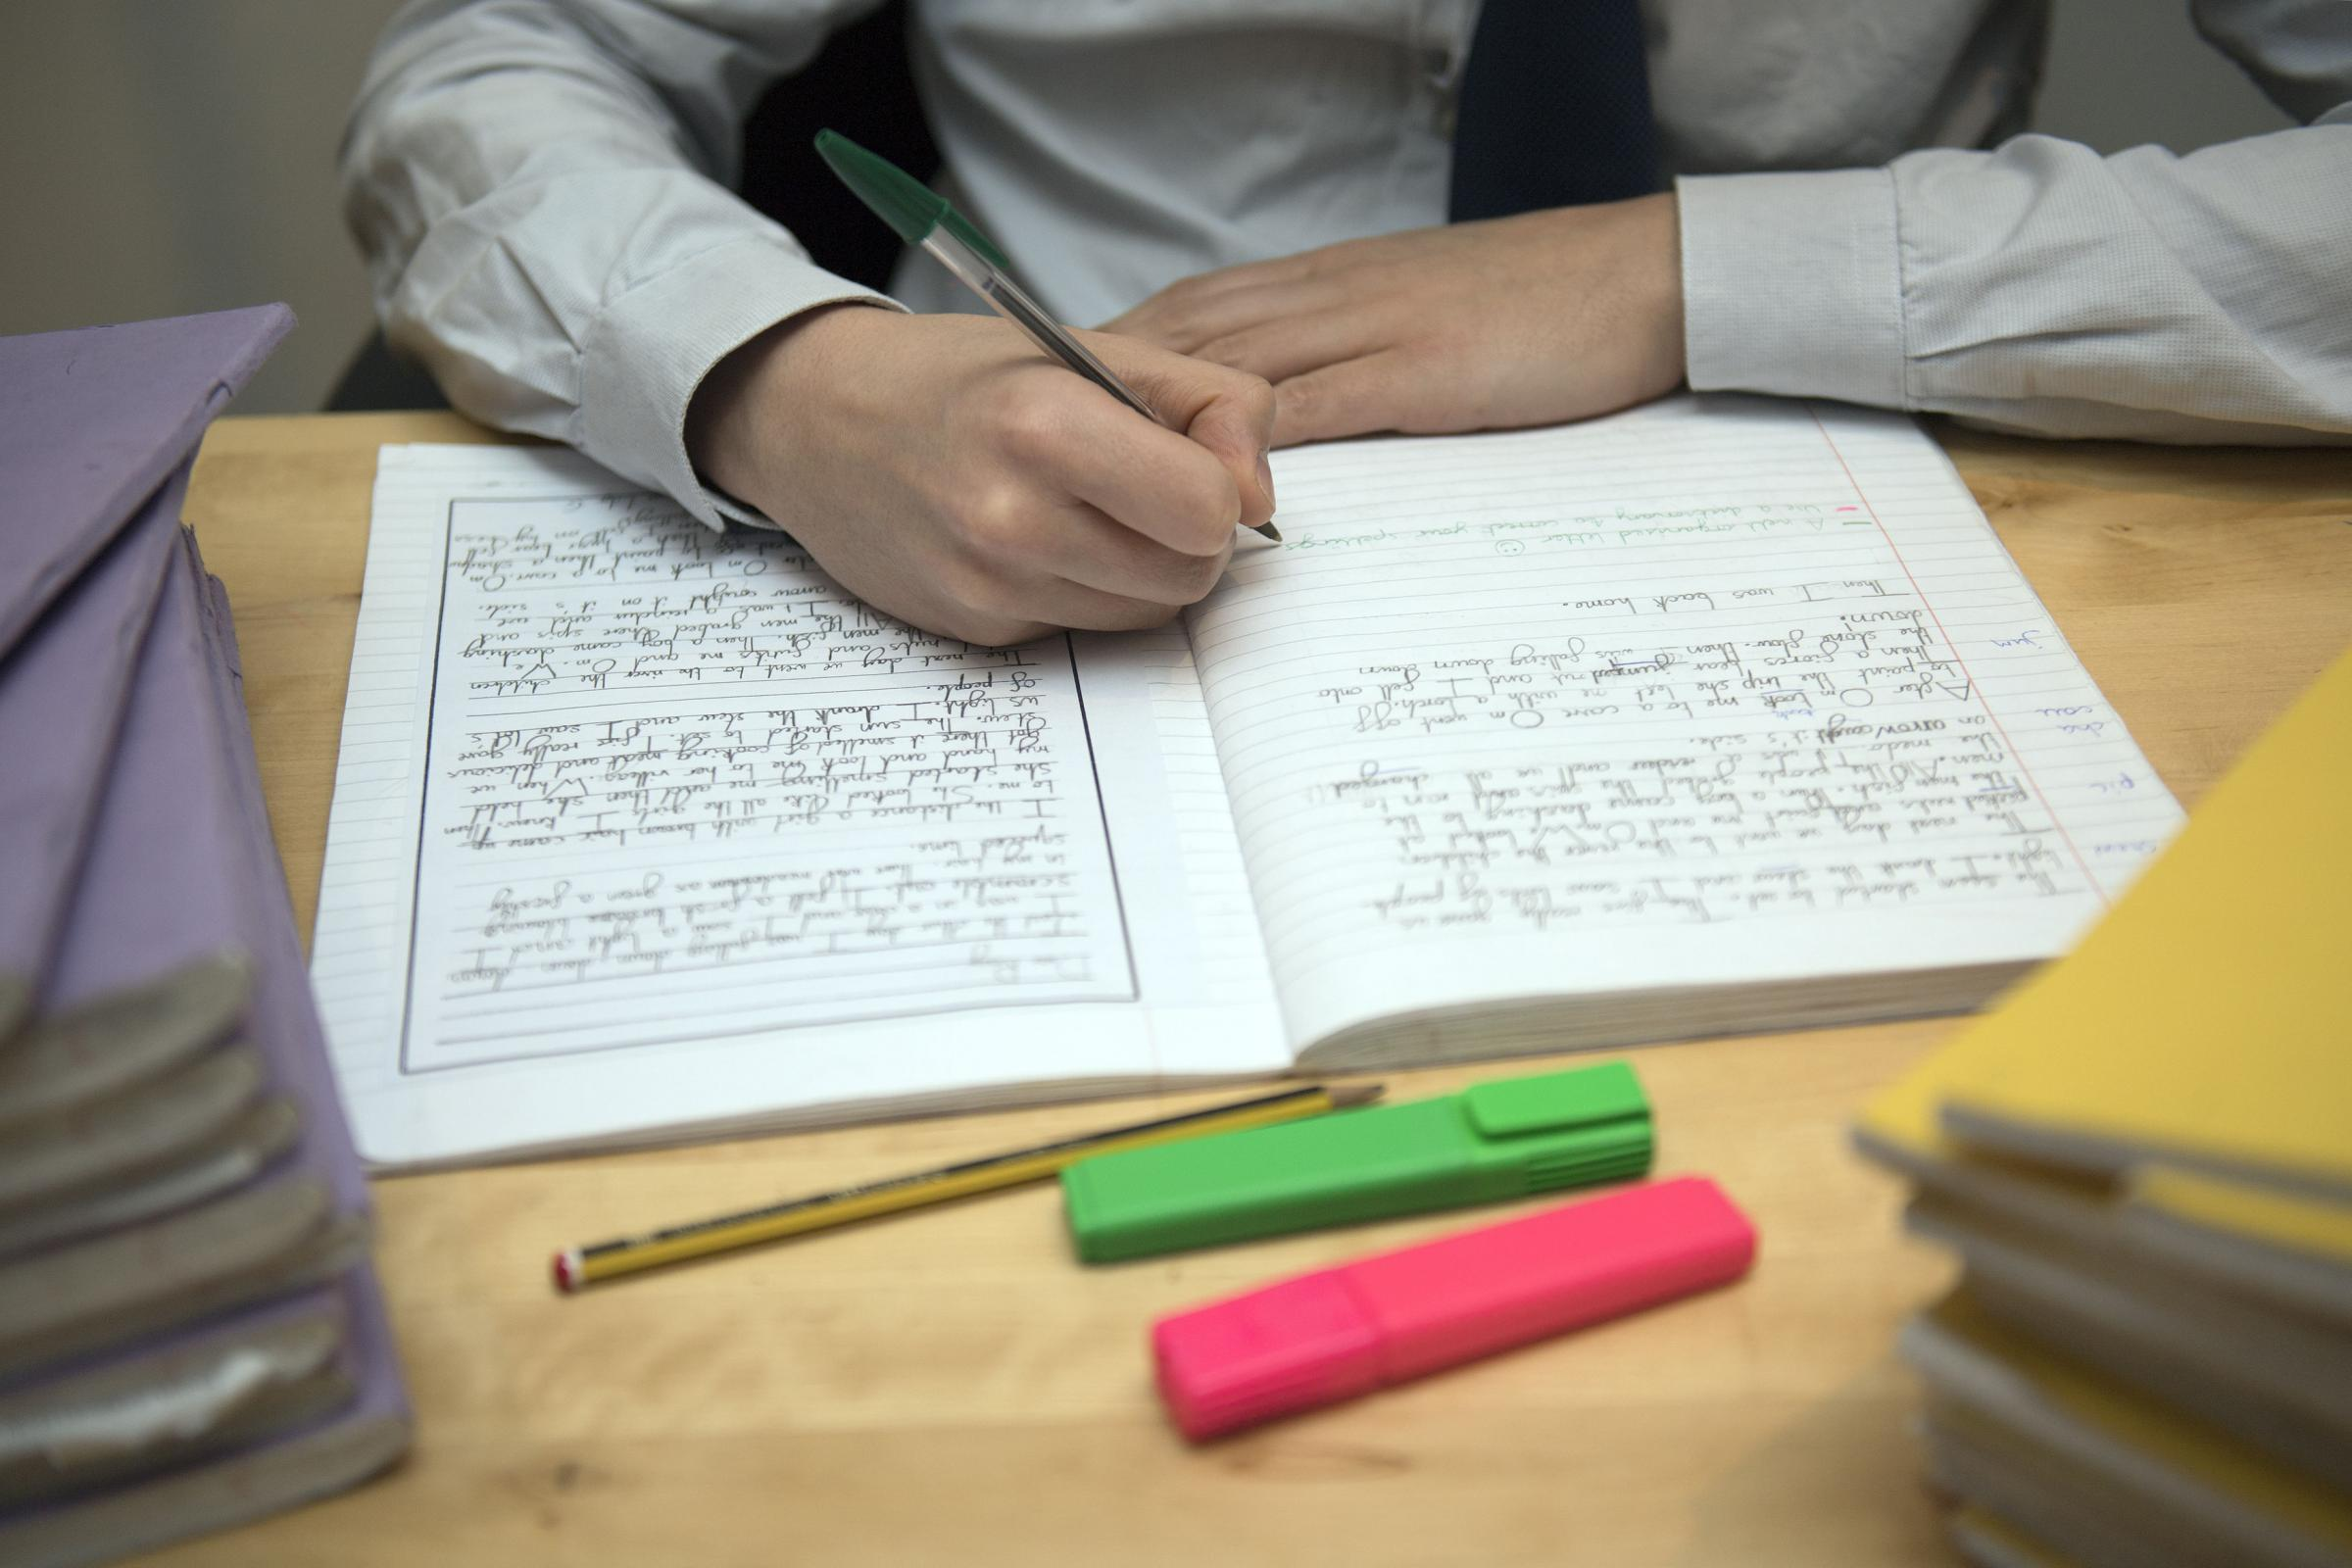 Children should sit more exams to help them cope with exam stress, minister argues